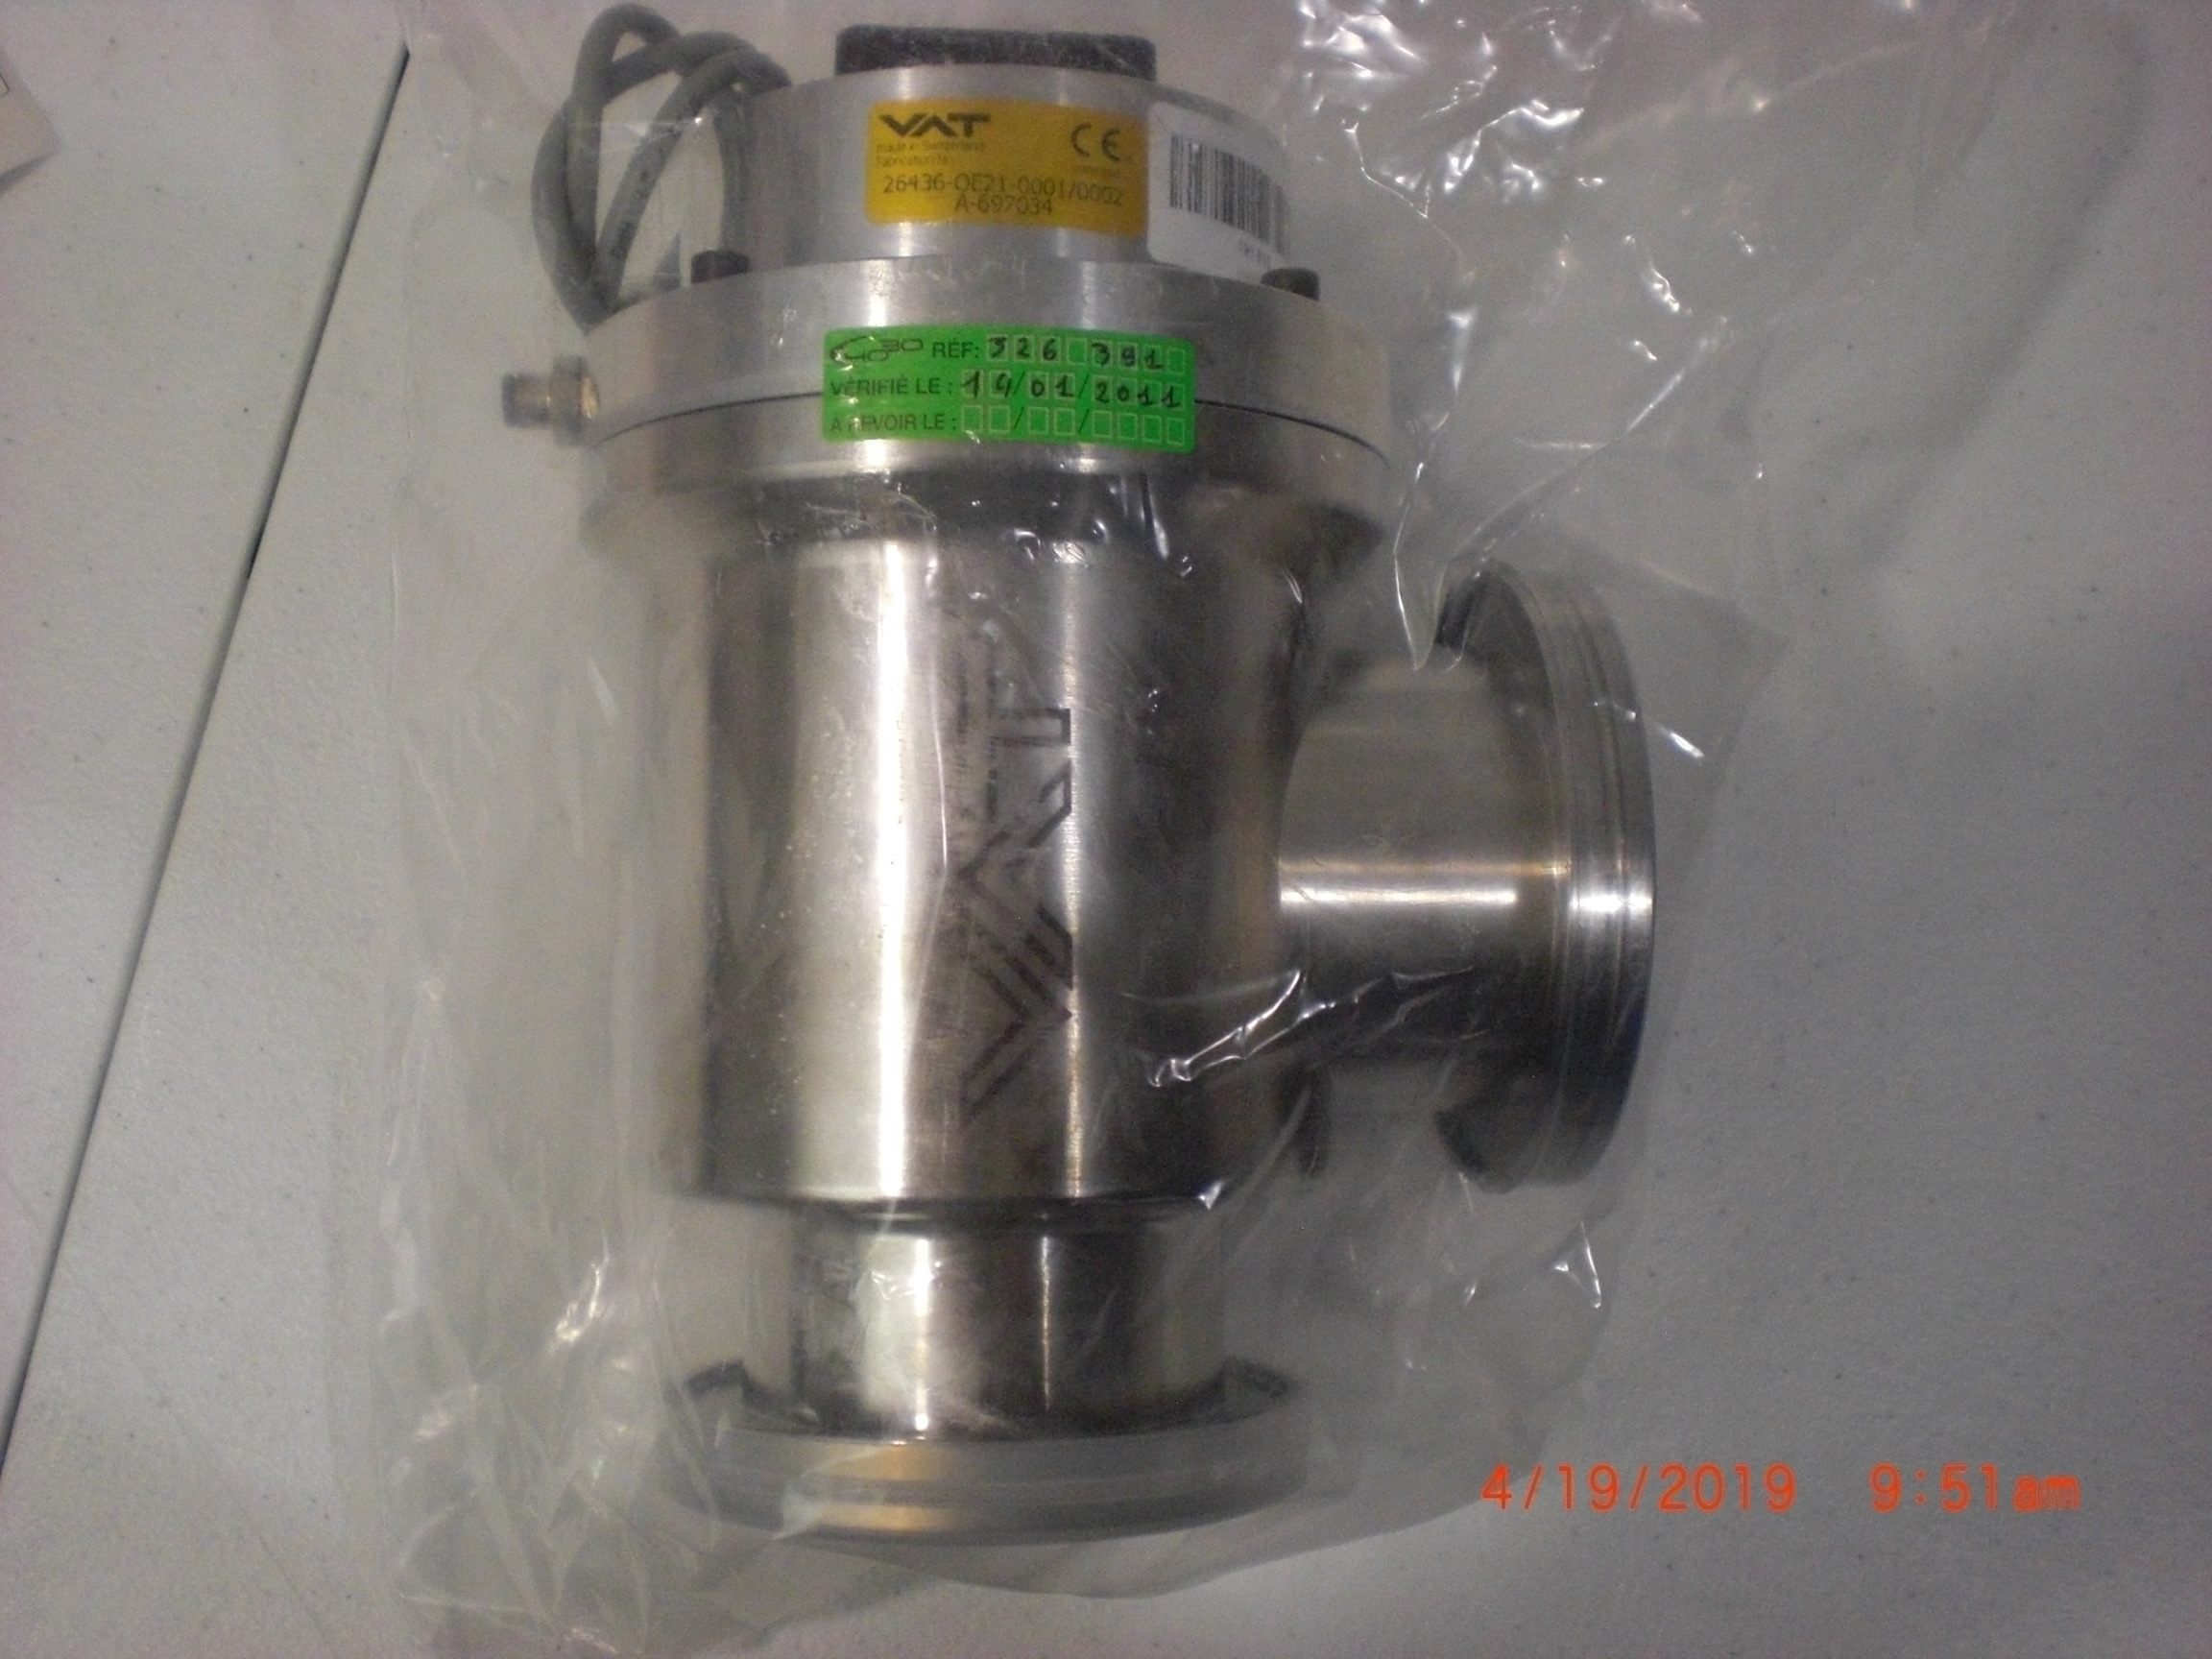 Valve VAT 26436-OE21-001/002 Bellows vacuum ISO 63